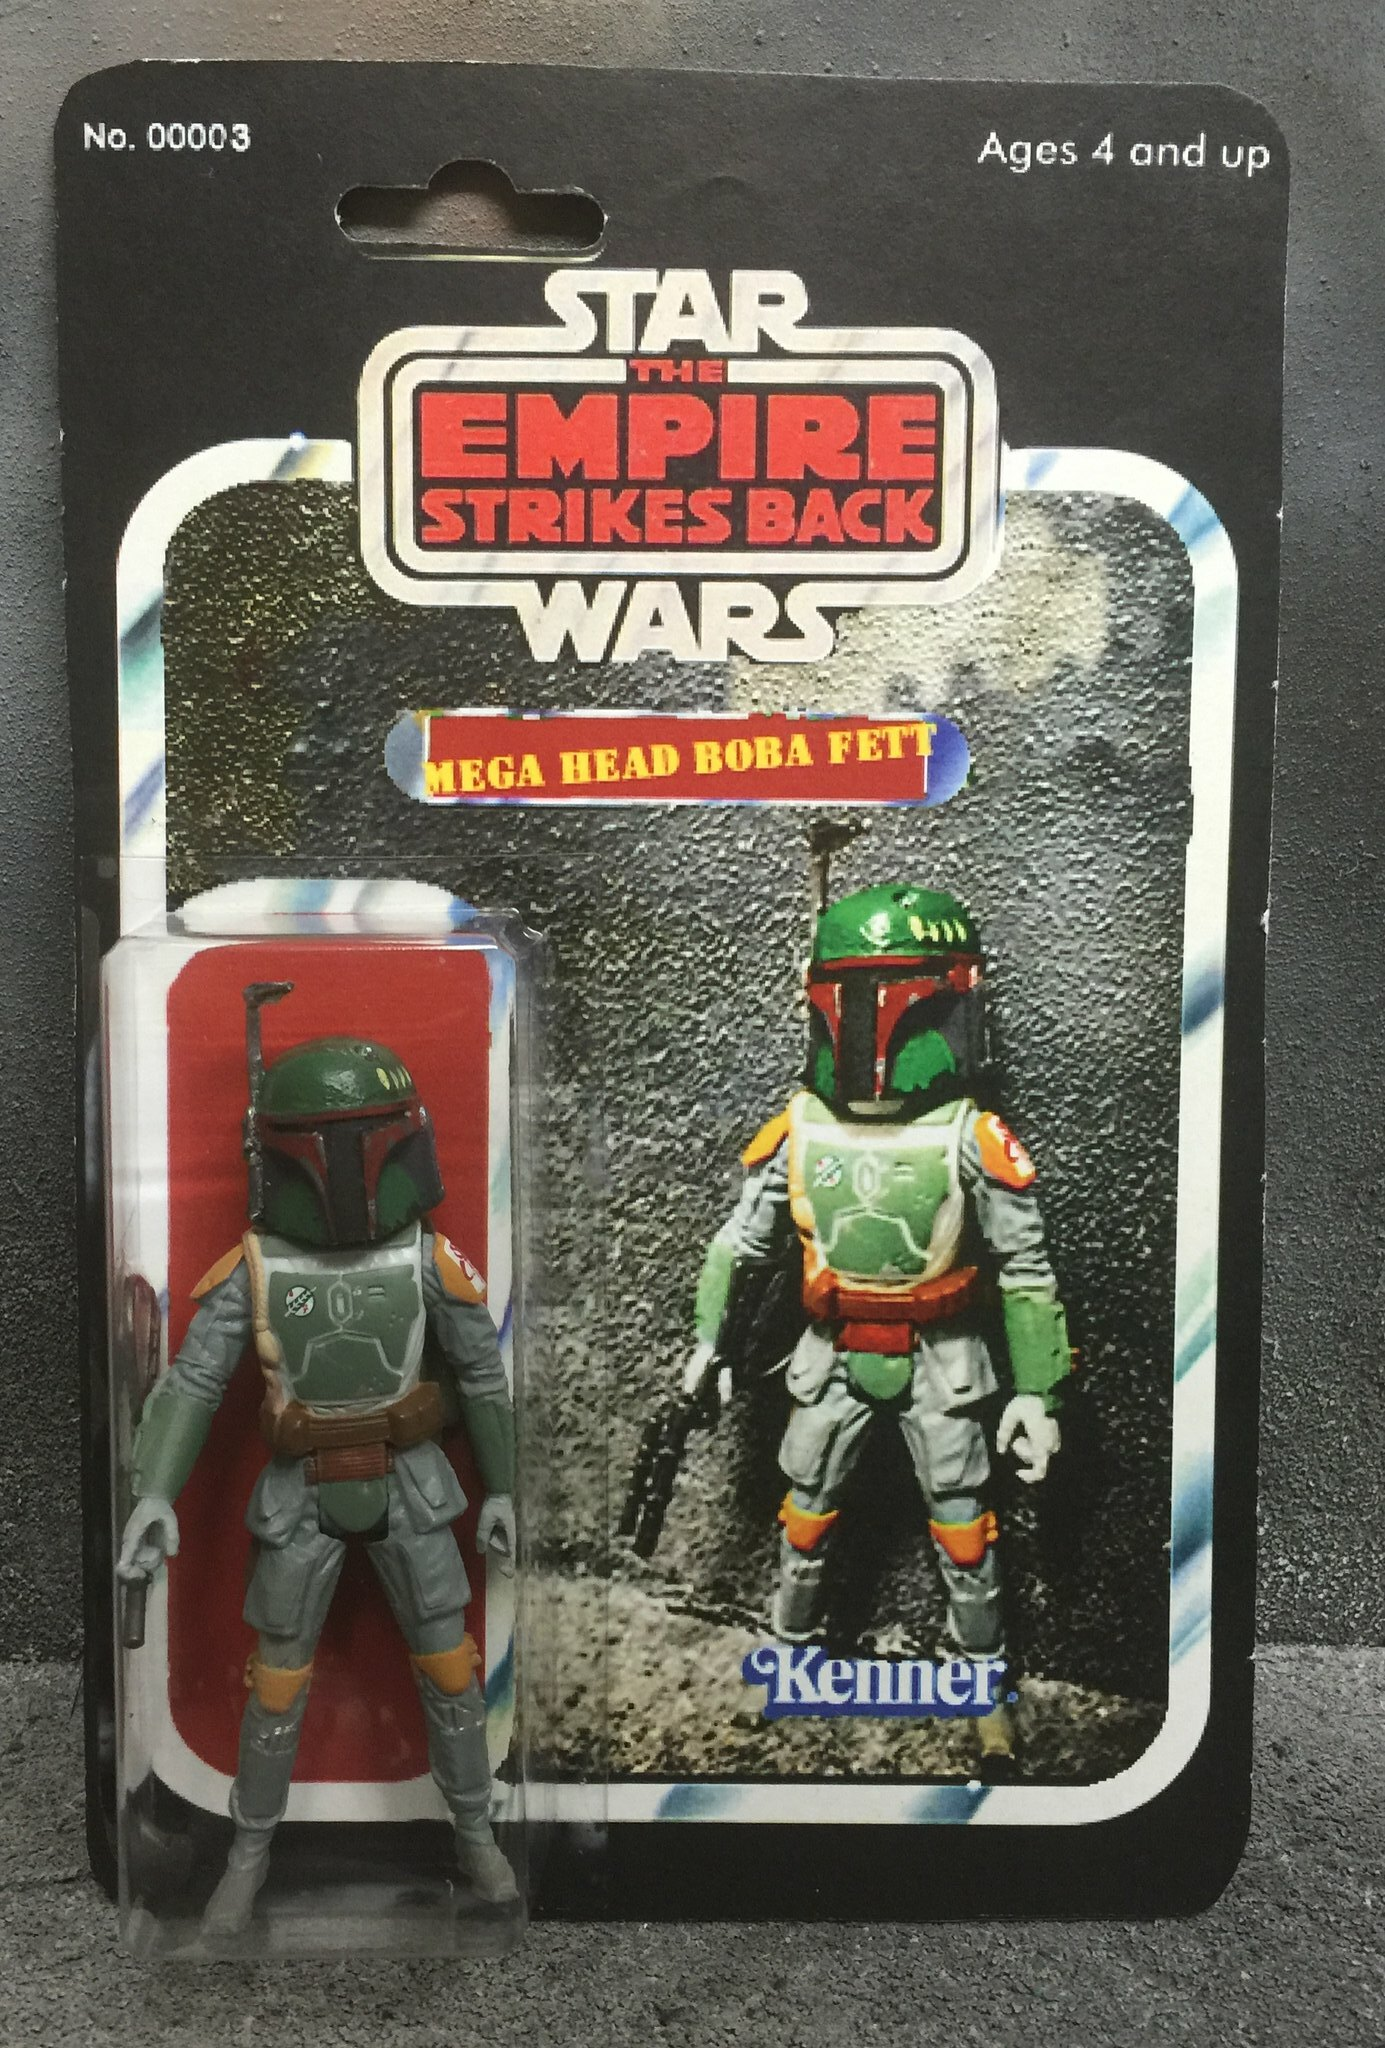 Plisnithus7 Vintage (and other) Star Wars Customs Carded - Page 13 24845983733_ef6f42c8be_k